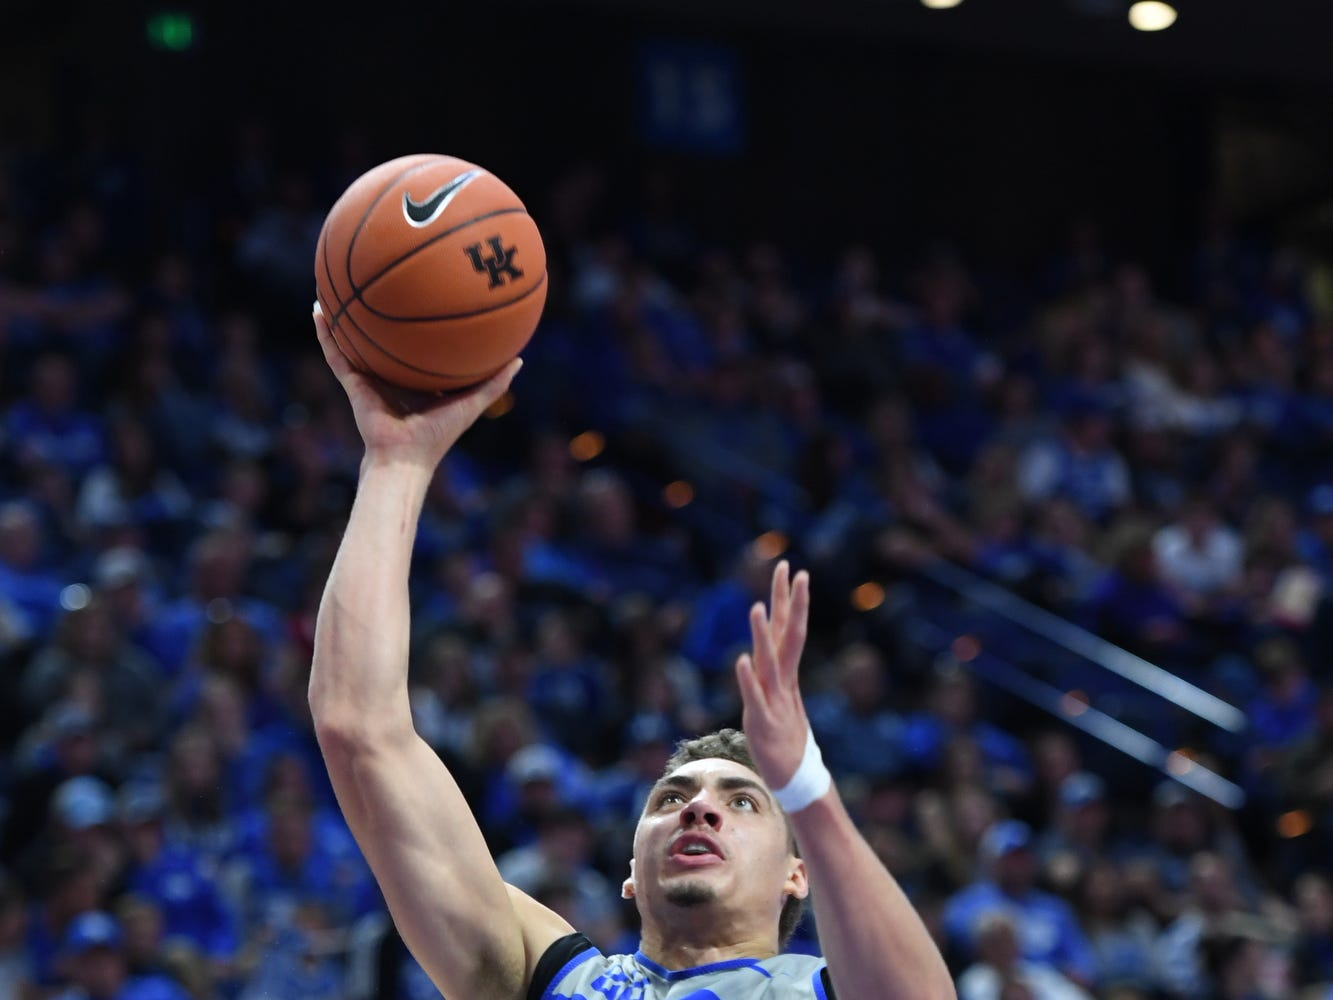 UK F Reid Travis lays up the ball during the University of Kentucky mens basketball Blue/White game at Rupp Arena in Lexington, Kentucky on Sunday, October 21, 2018.